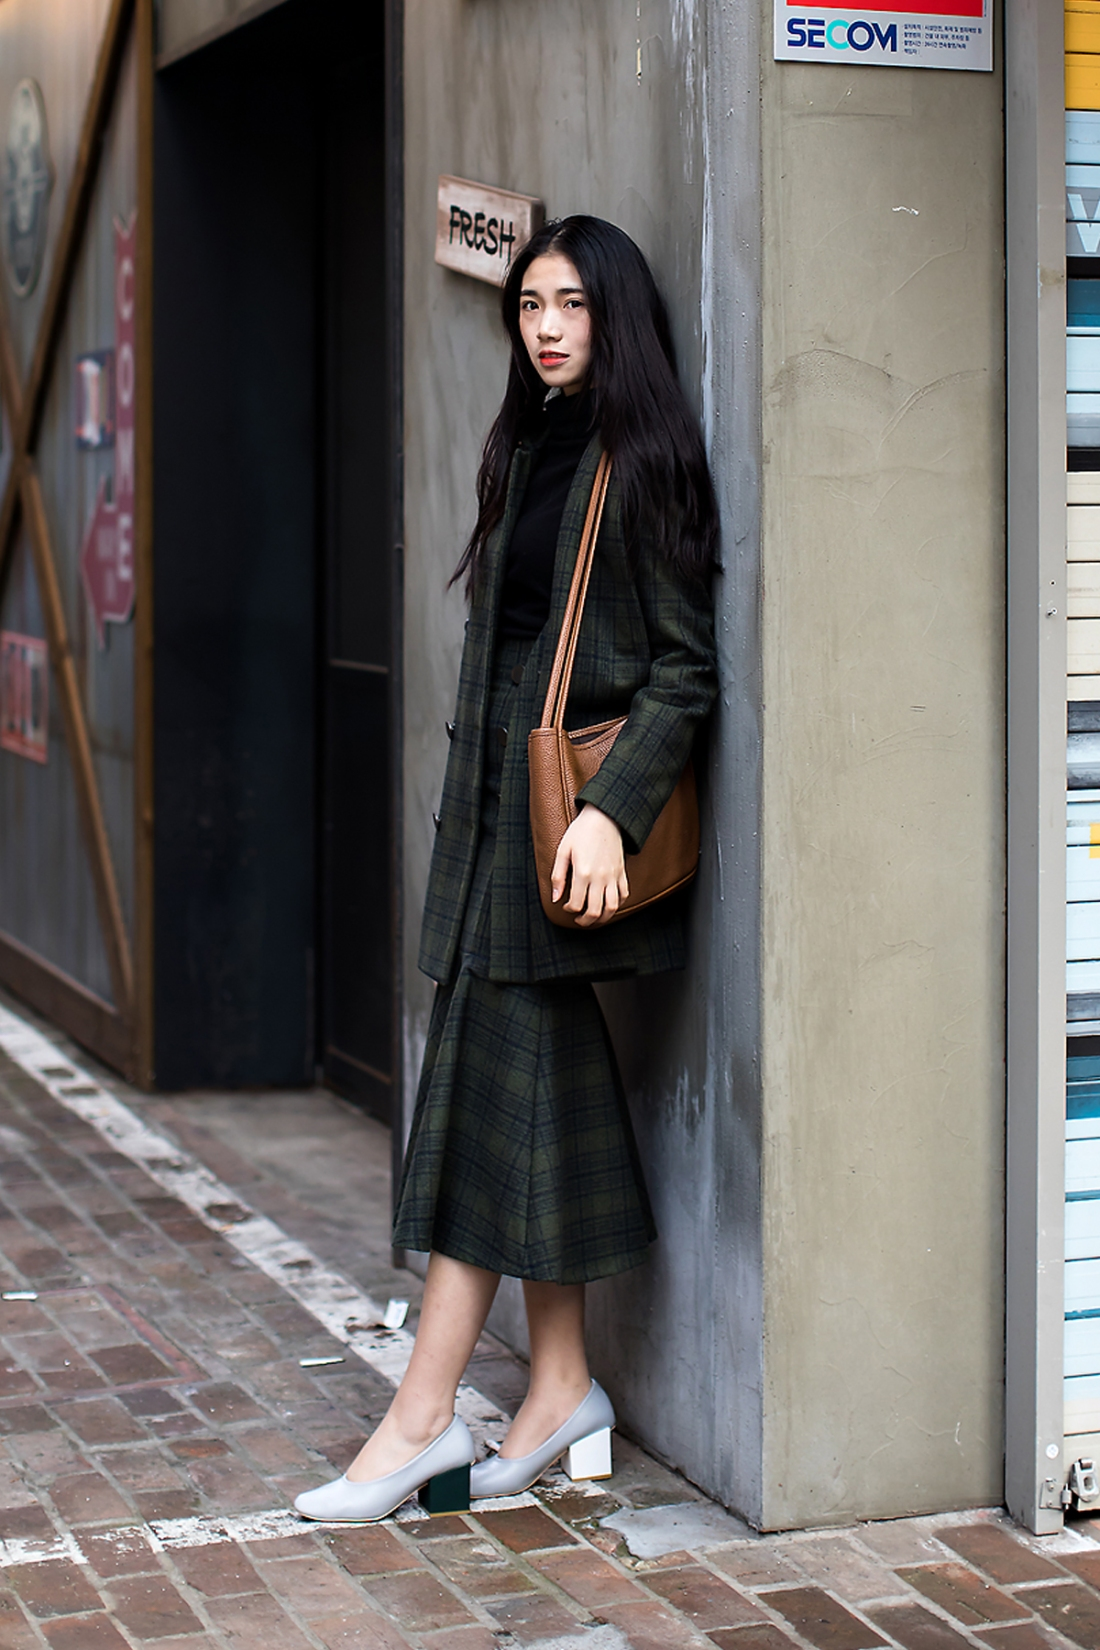 hujingyi-street-fashion-2017-in-seoul